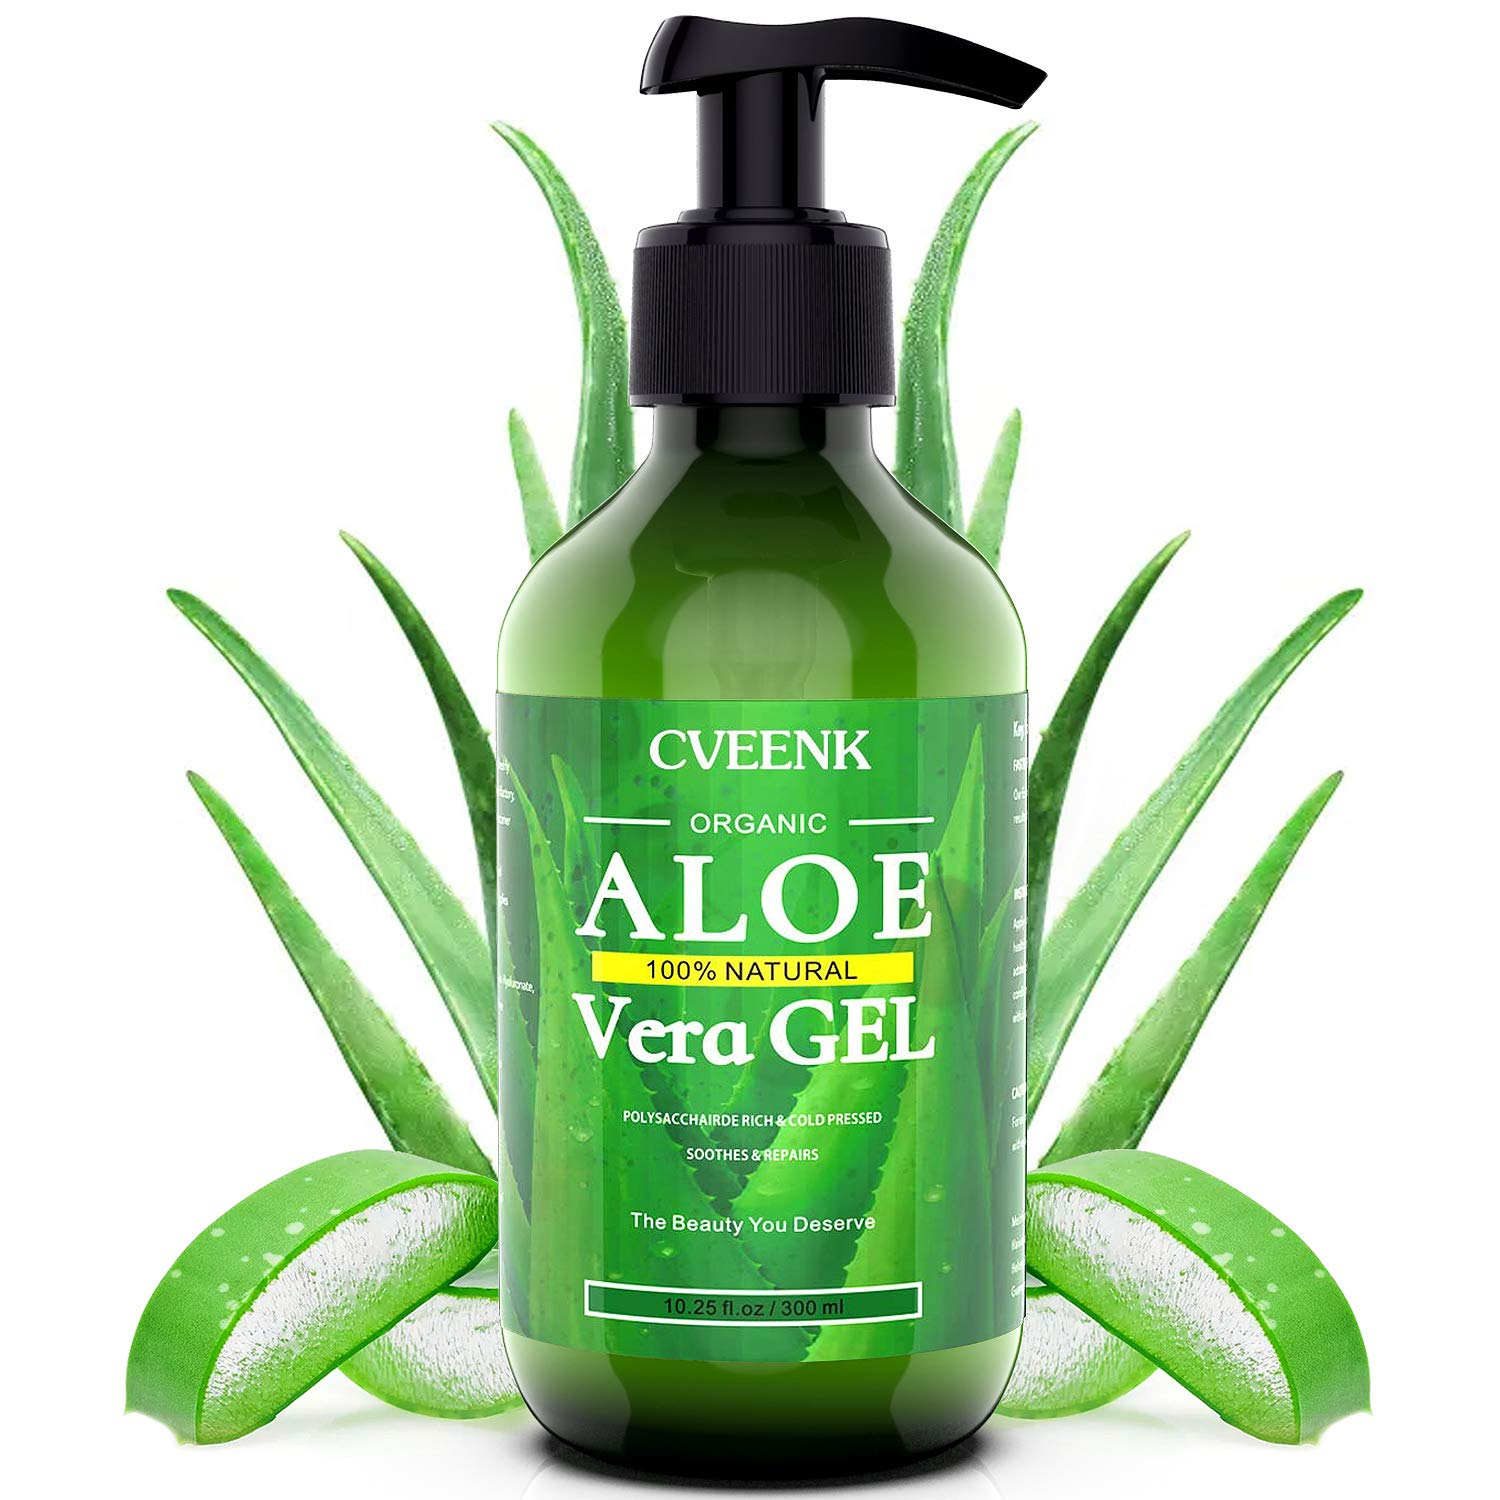 CVEENK Aloe Vera Gel, 10oz 300ml Organic Aloe Vera Moisturizing Gel, 100% Natural Hydrating Skin Cooling Soothing Aloe Gel, Pure Aloe Plant for Face, Body, Hair, Sunburn, Bites, Rashes, Sensitive Skin